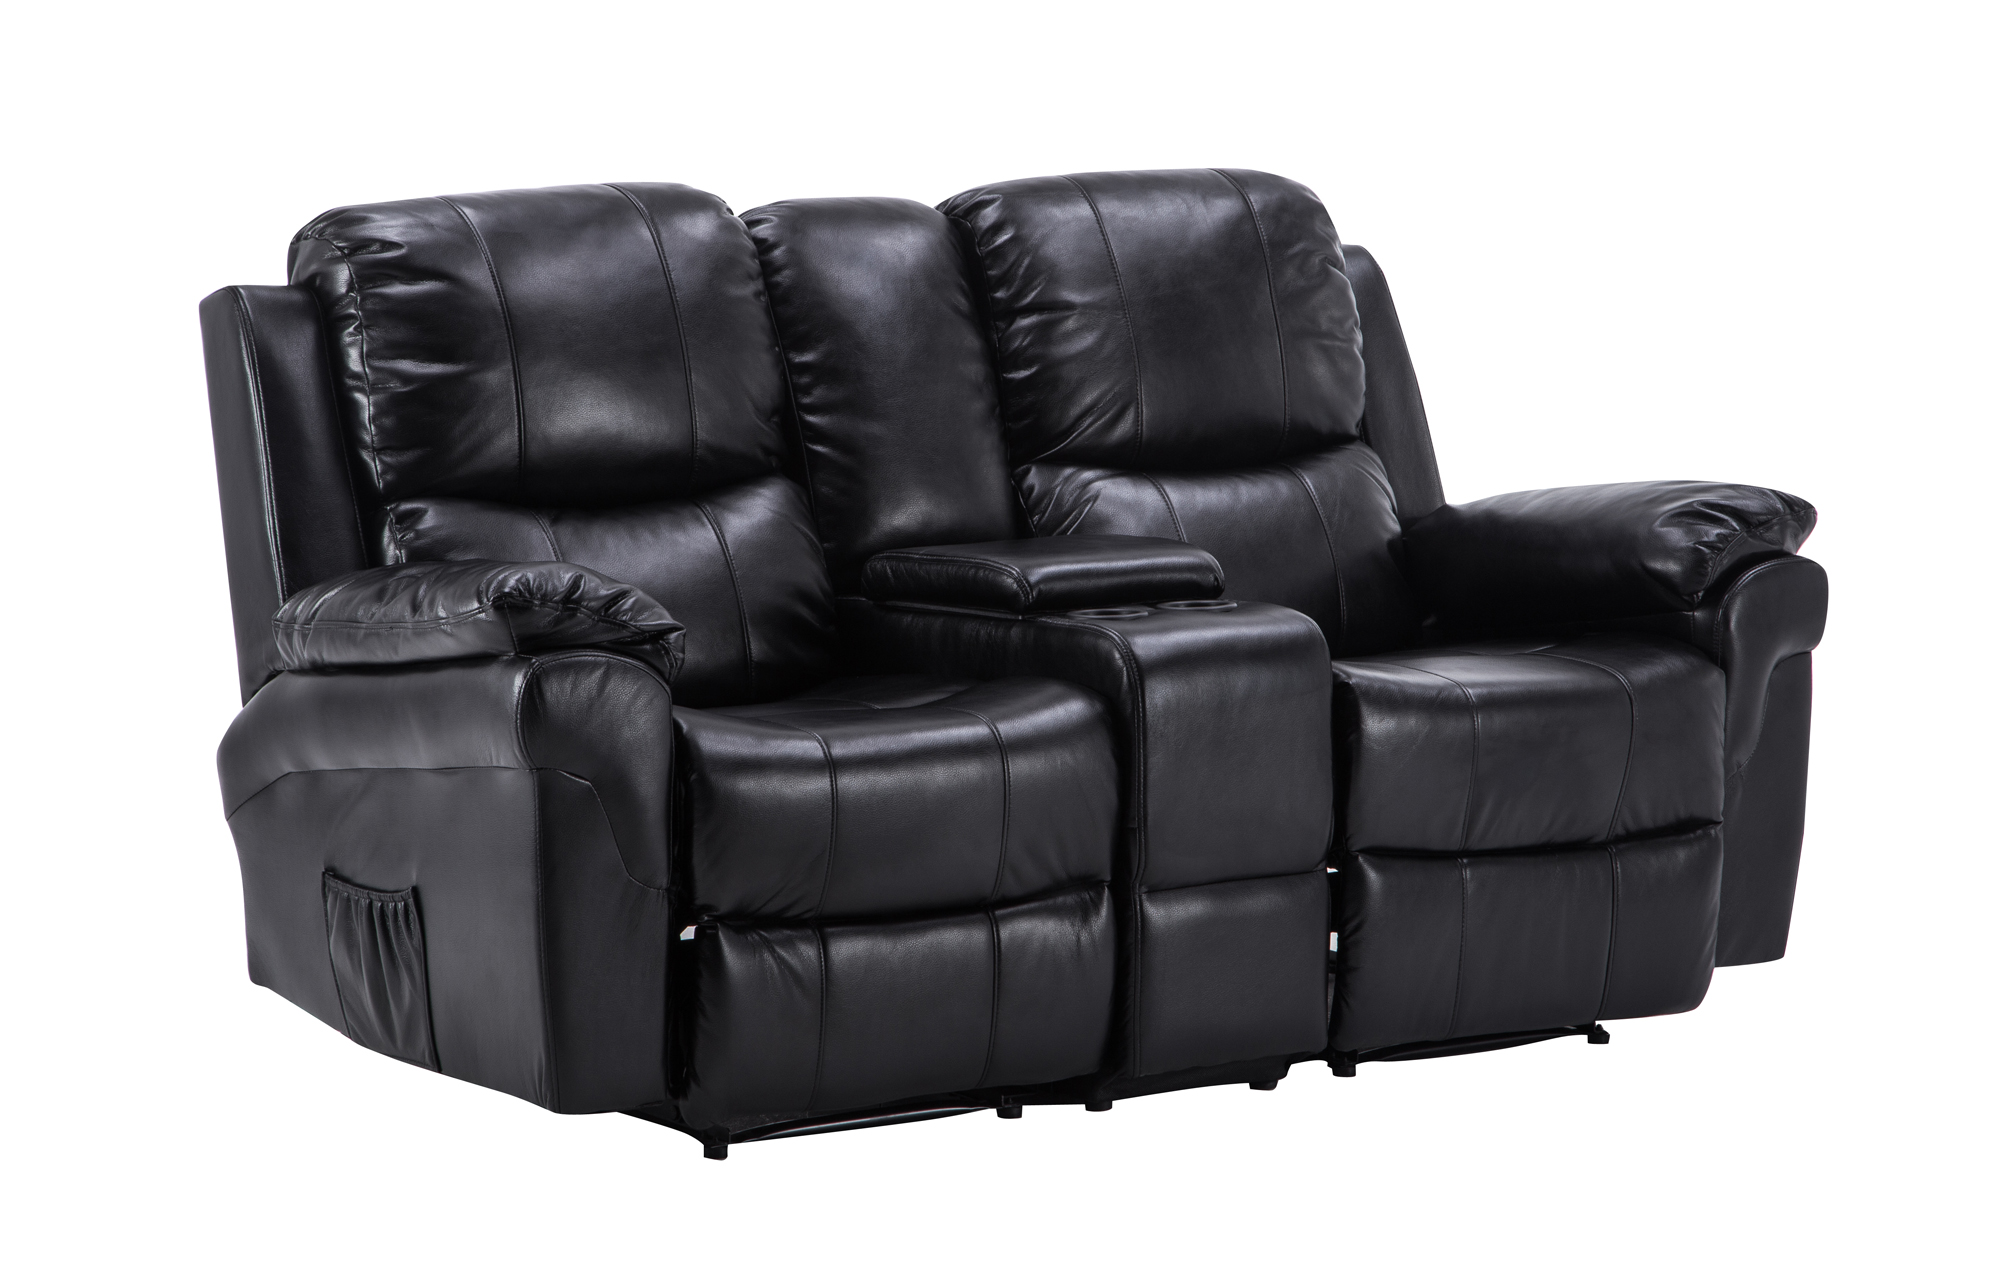 Kinosessel Couch Mcombo Kinosessel Fernsehsessel Relaxsessel 2 Sitzer Heimkino